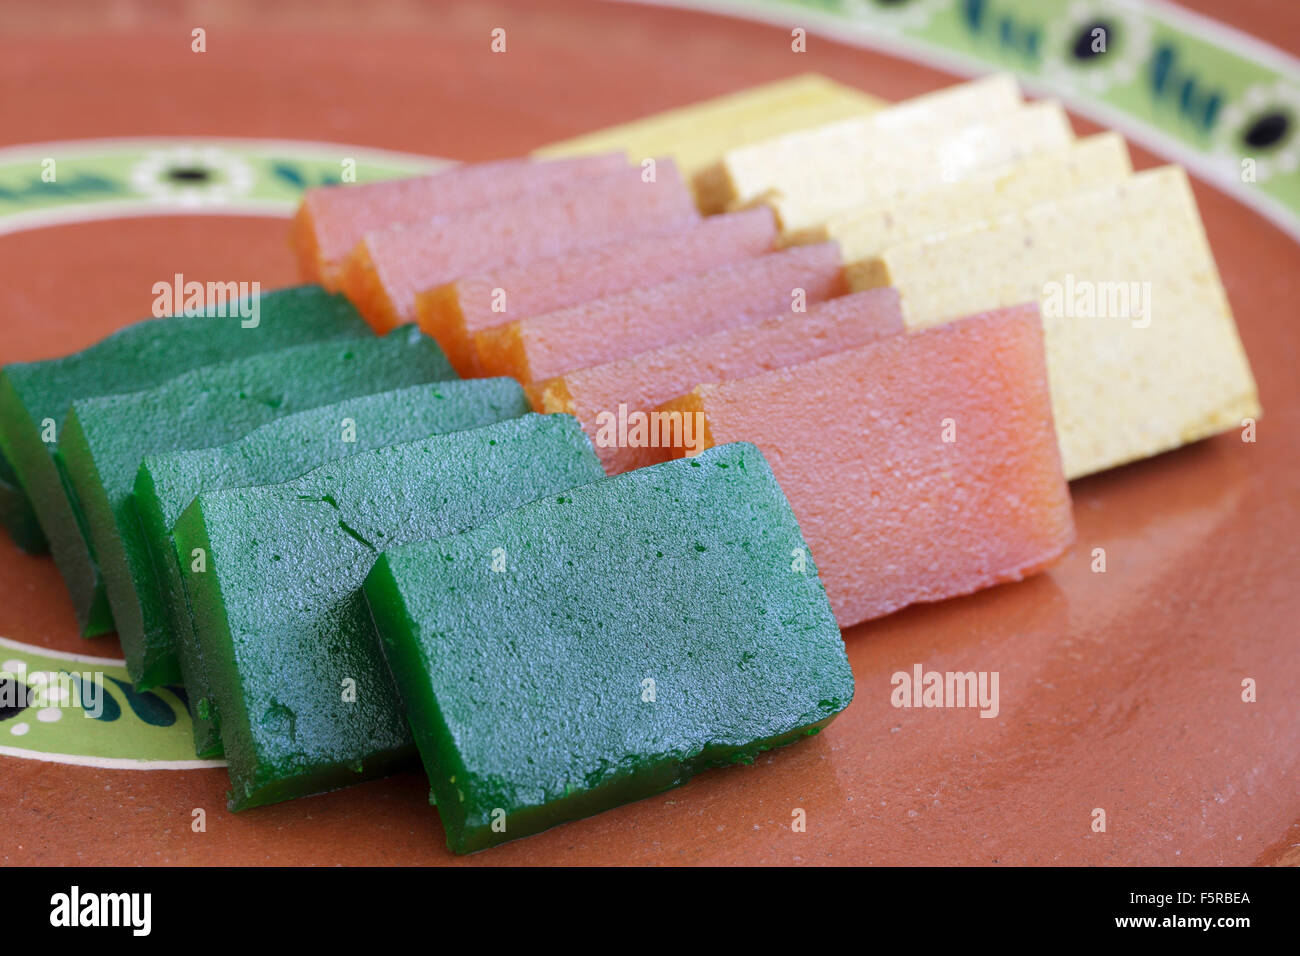 Slices of 'ate', a fruit paste candy traditional to Morelia, Michoacan, Mexico. - Stock Image